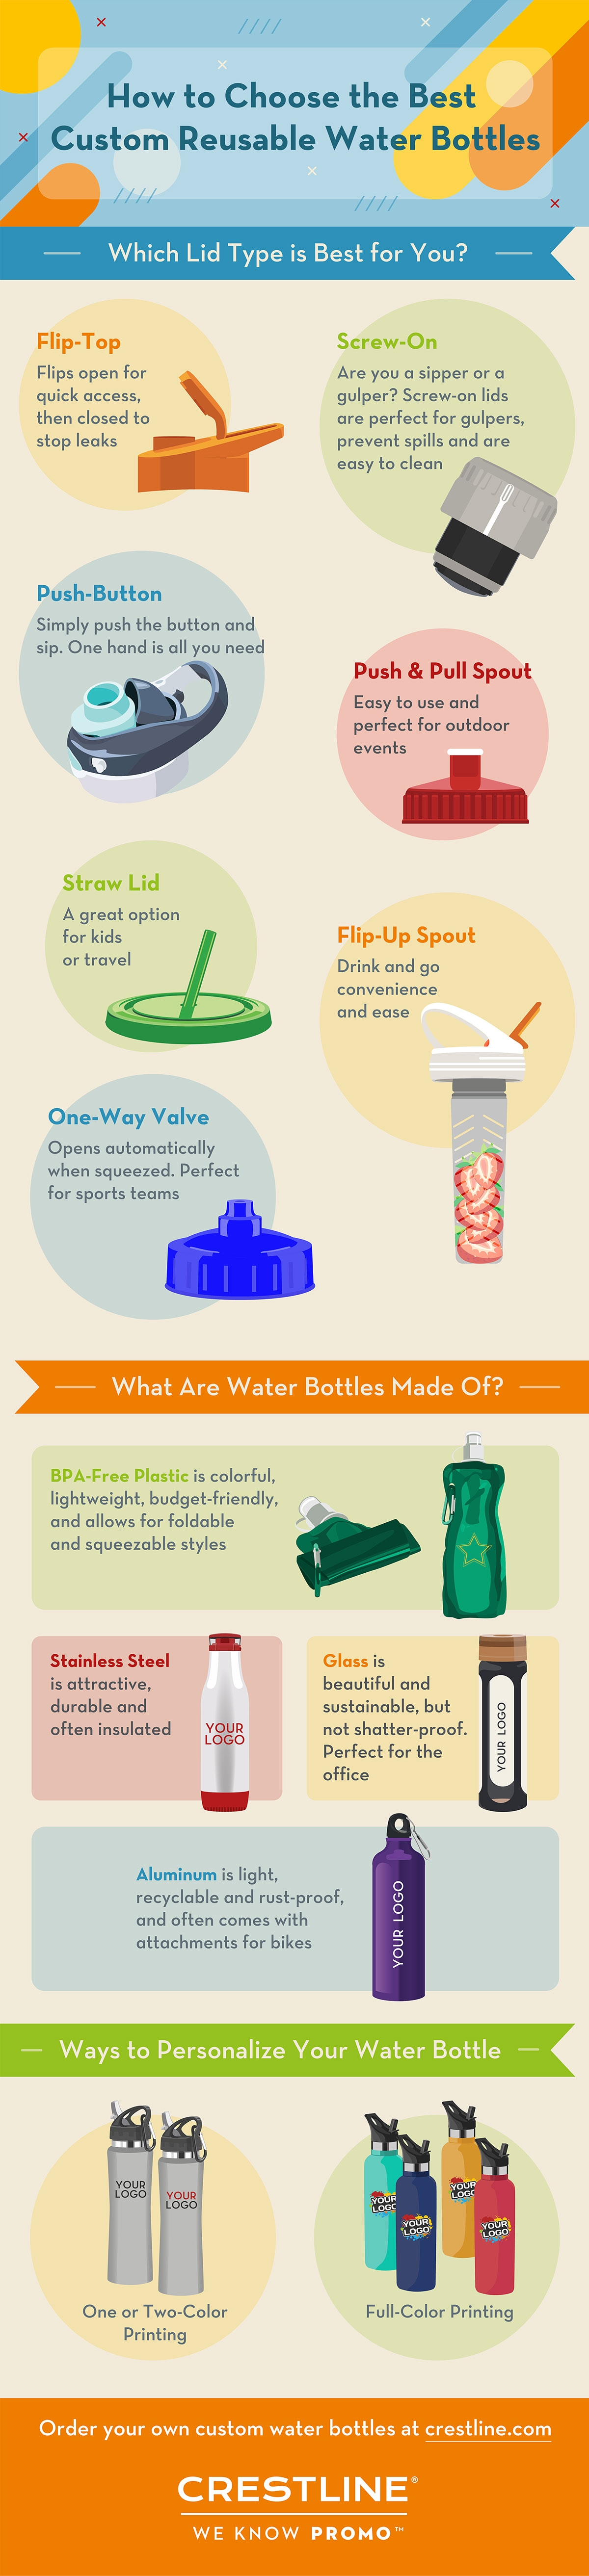 Reusable Water Bottle Infographic